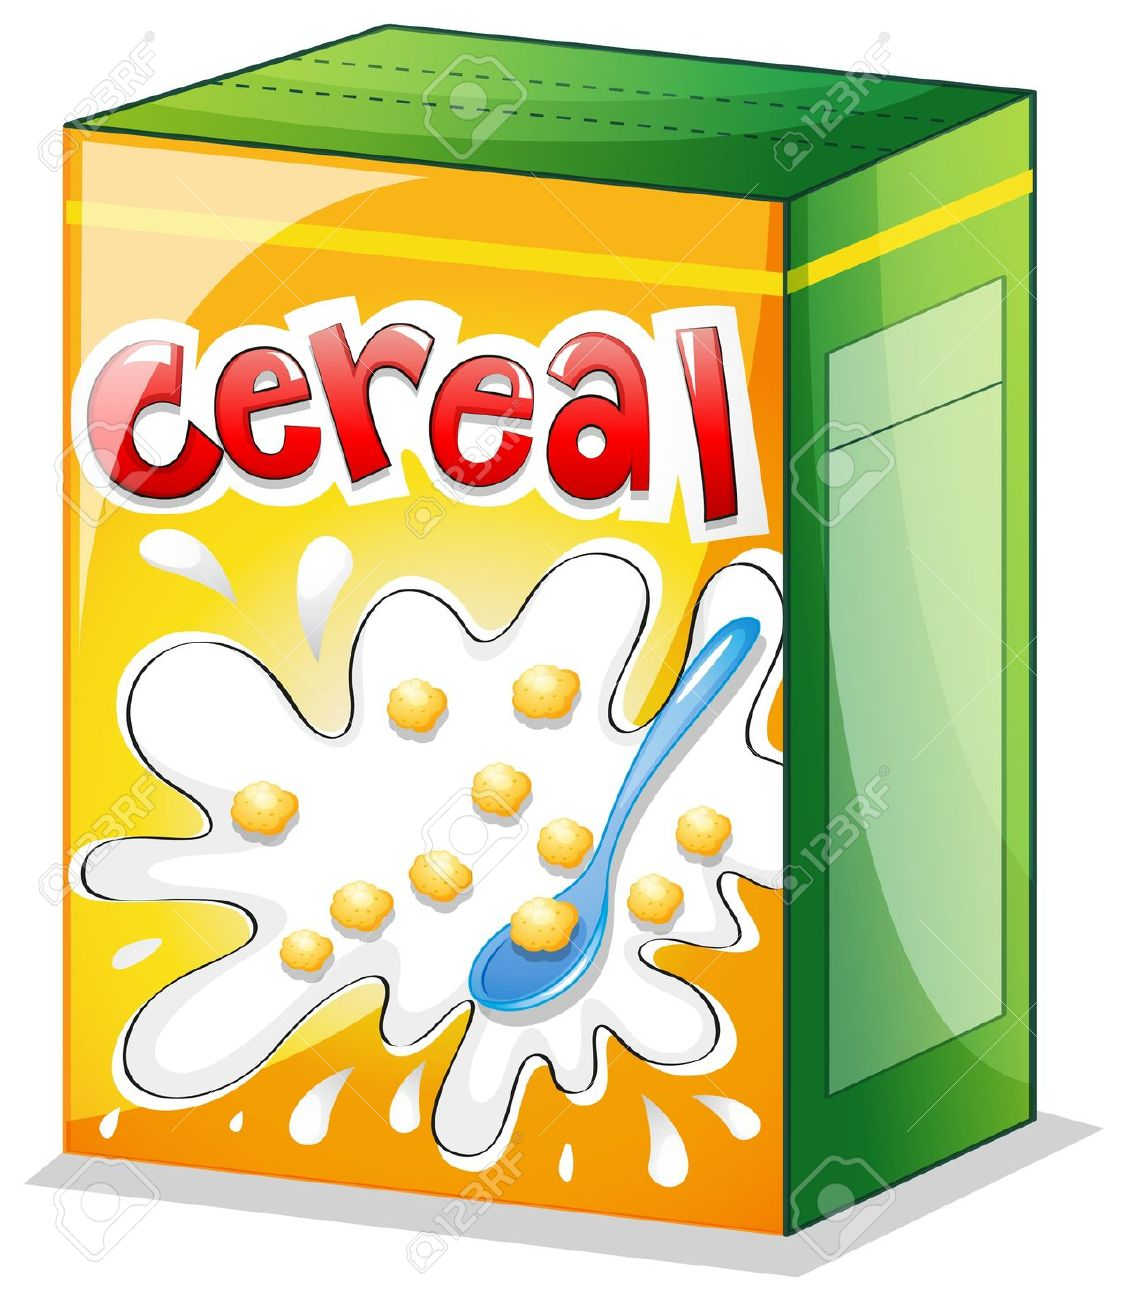 Cereal Box Clipart-Cereal Box Clipart-9